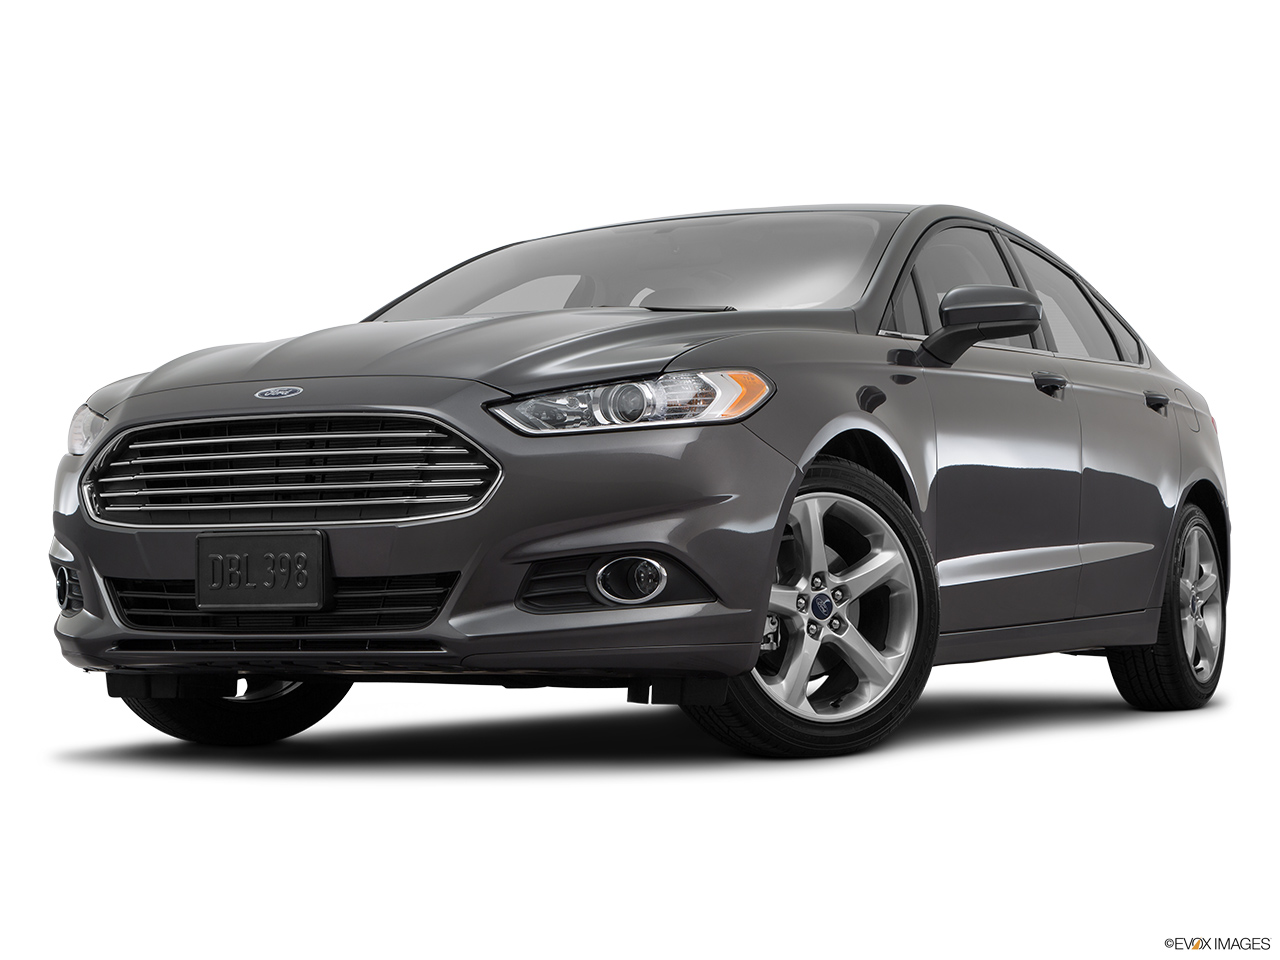 Car Pictures List for Ford Fusion 2016 1.5L EcoBoost